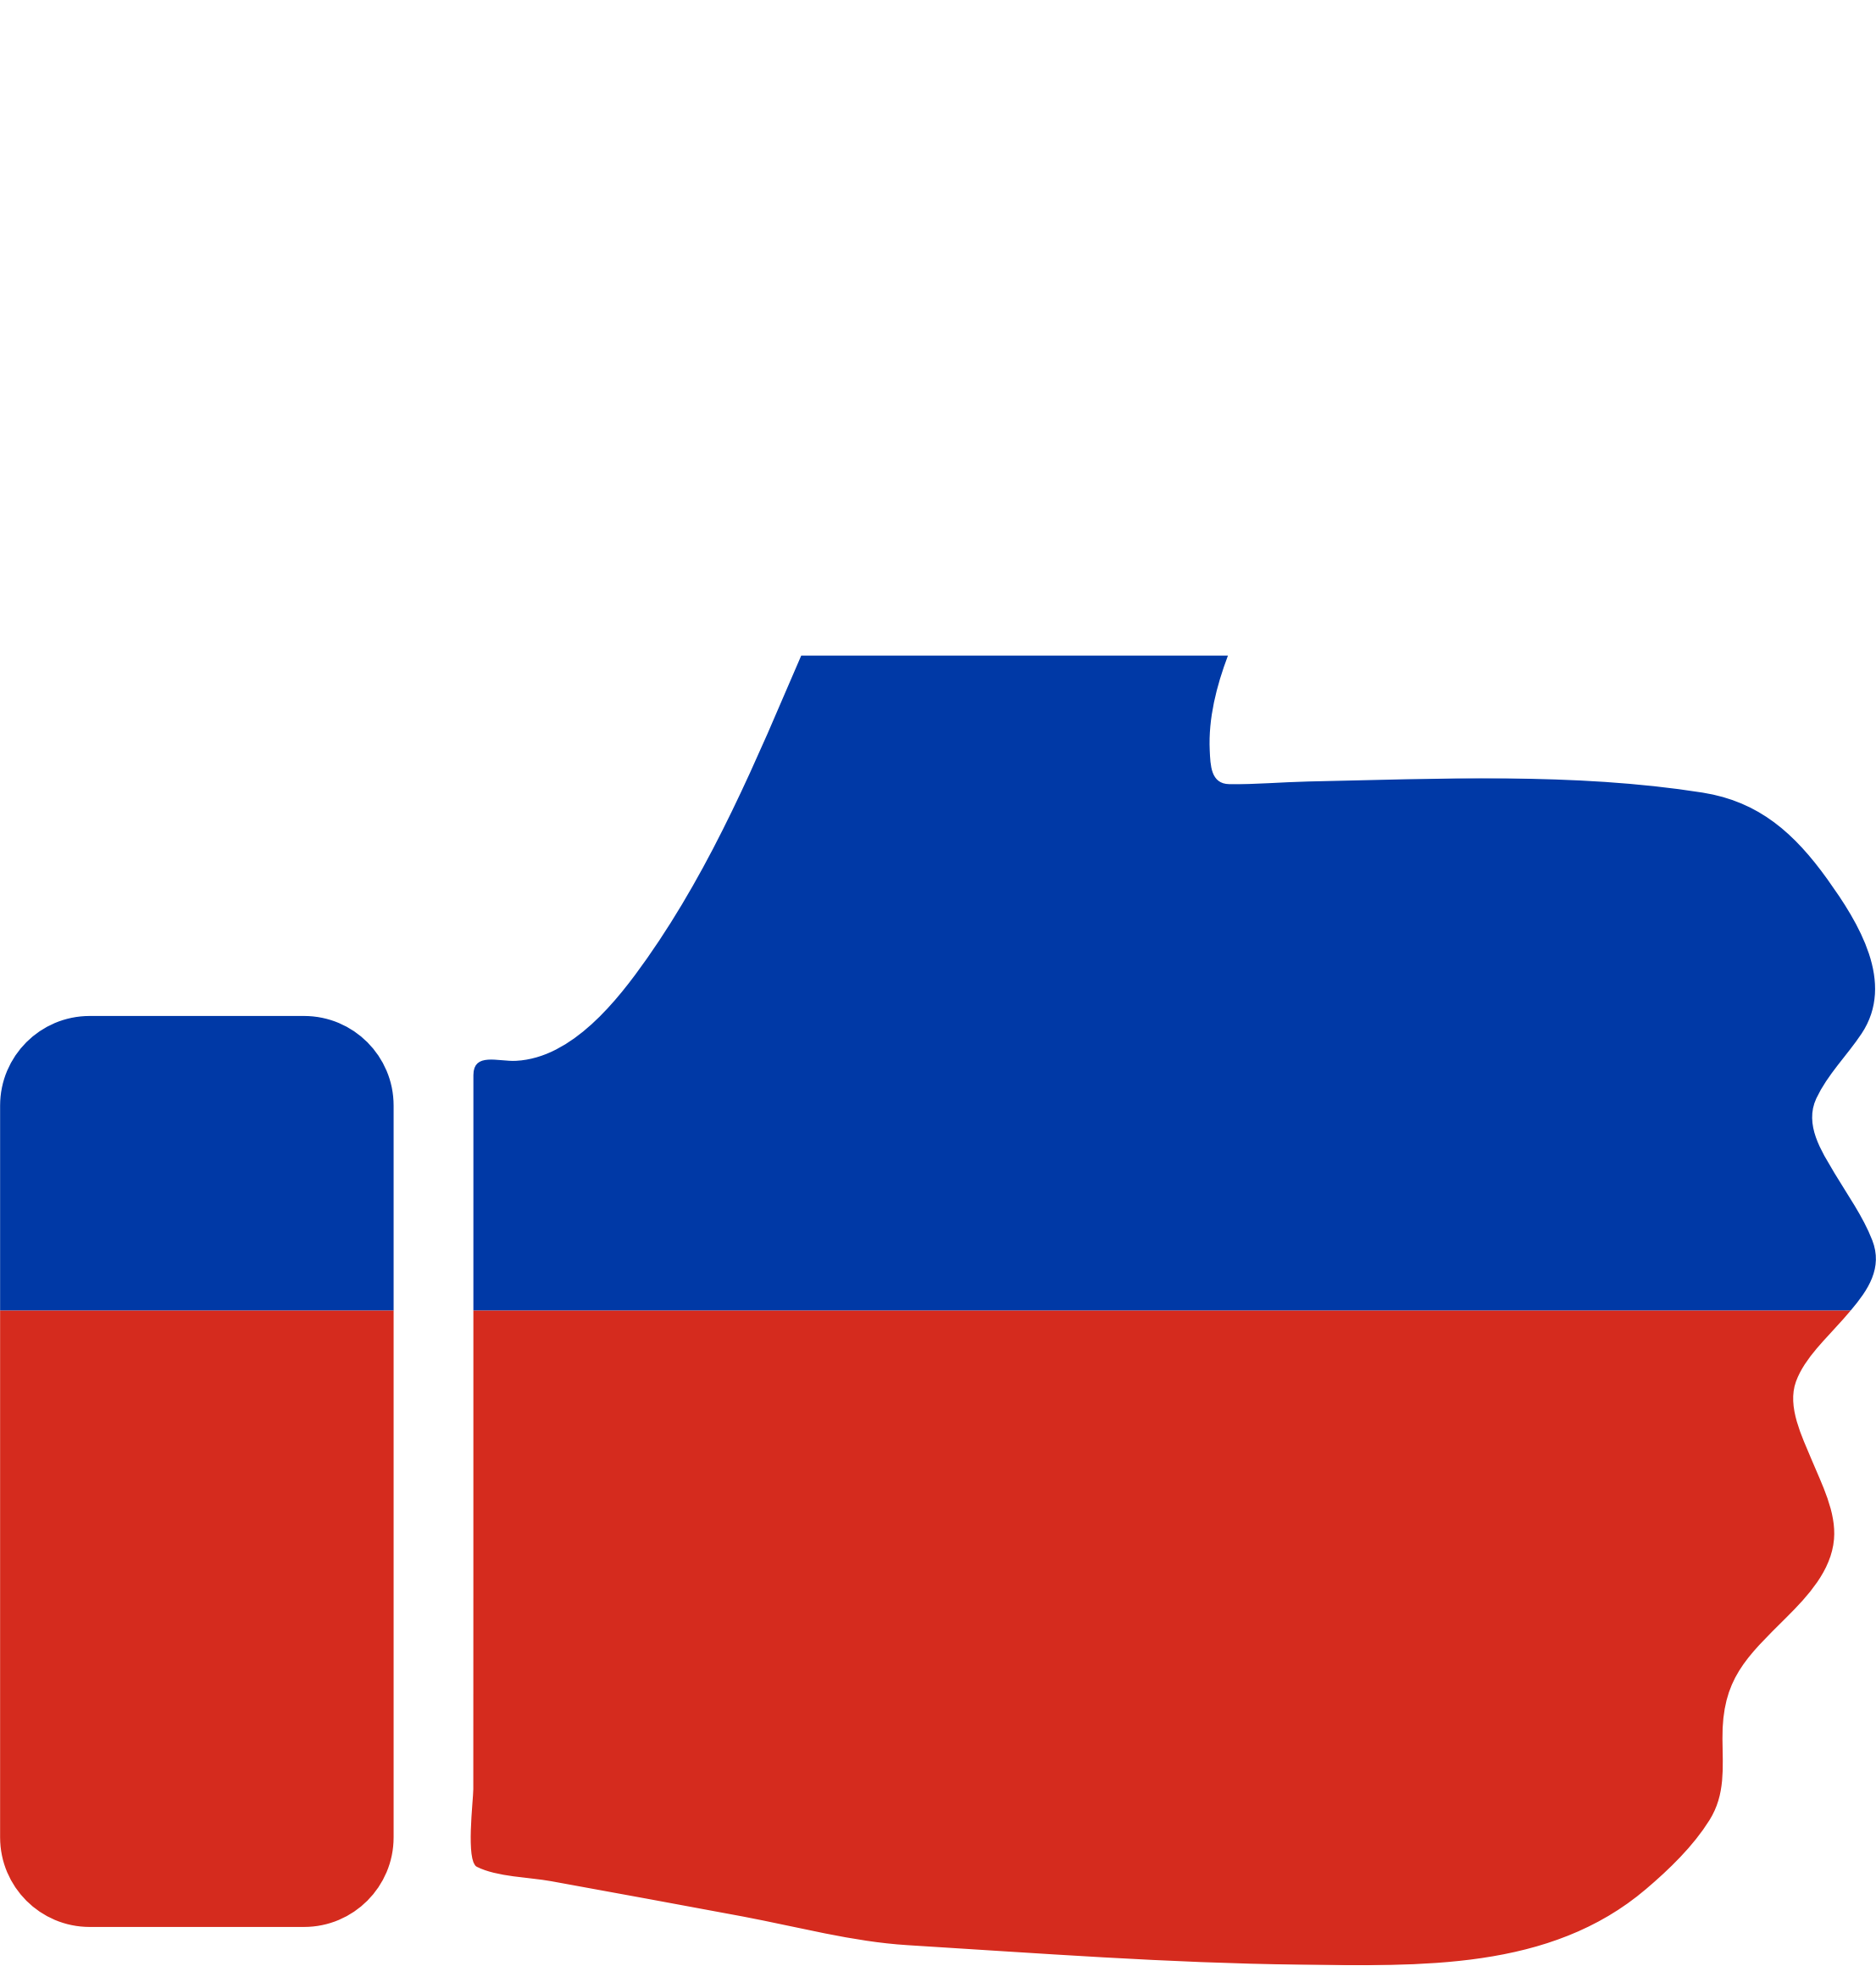 Thumbs Up Russia by GDJ